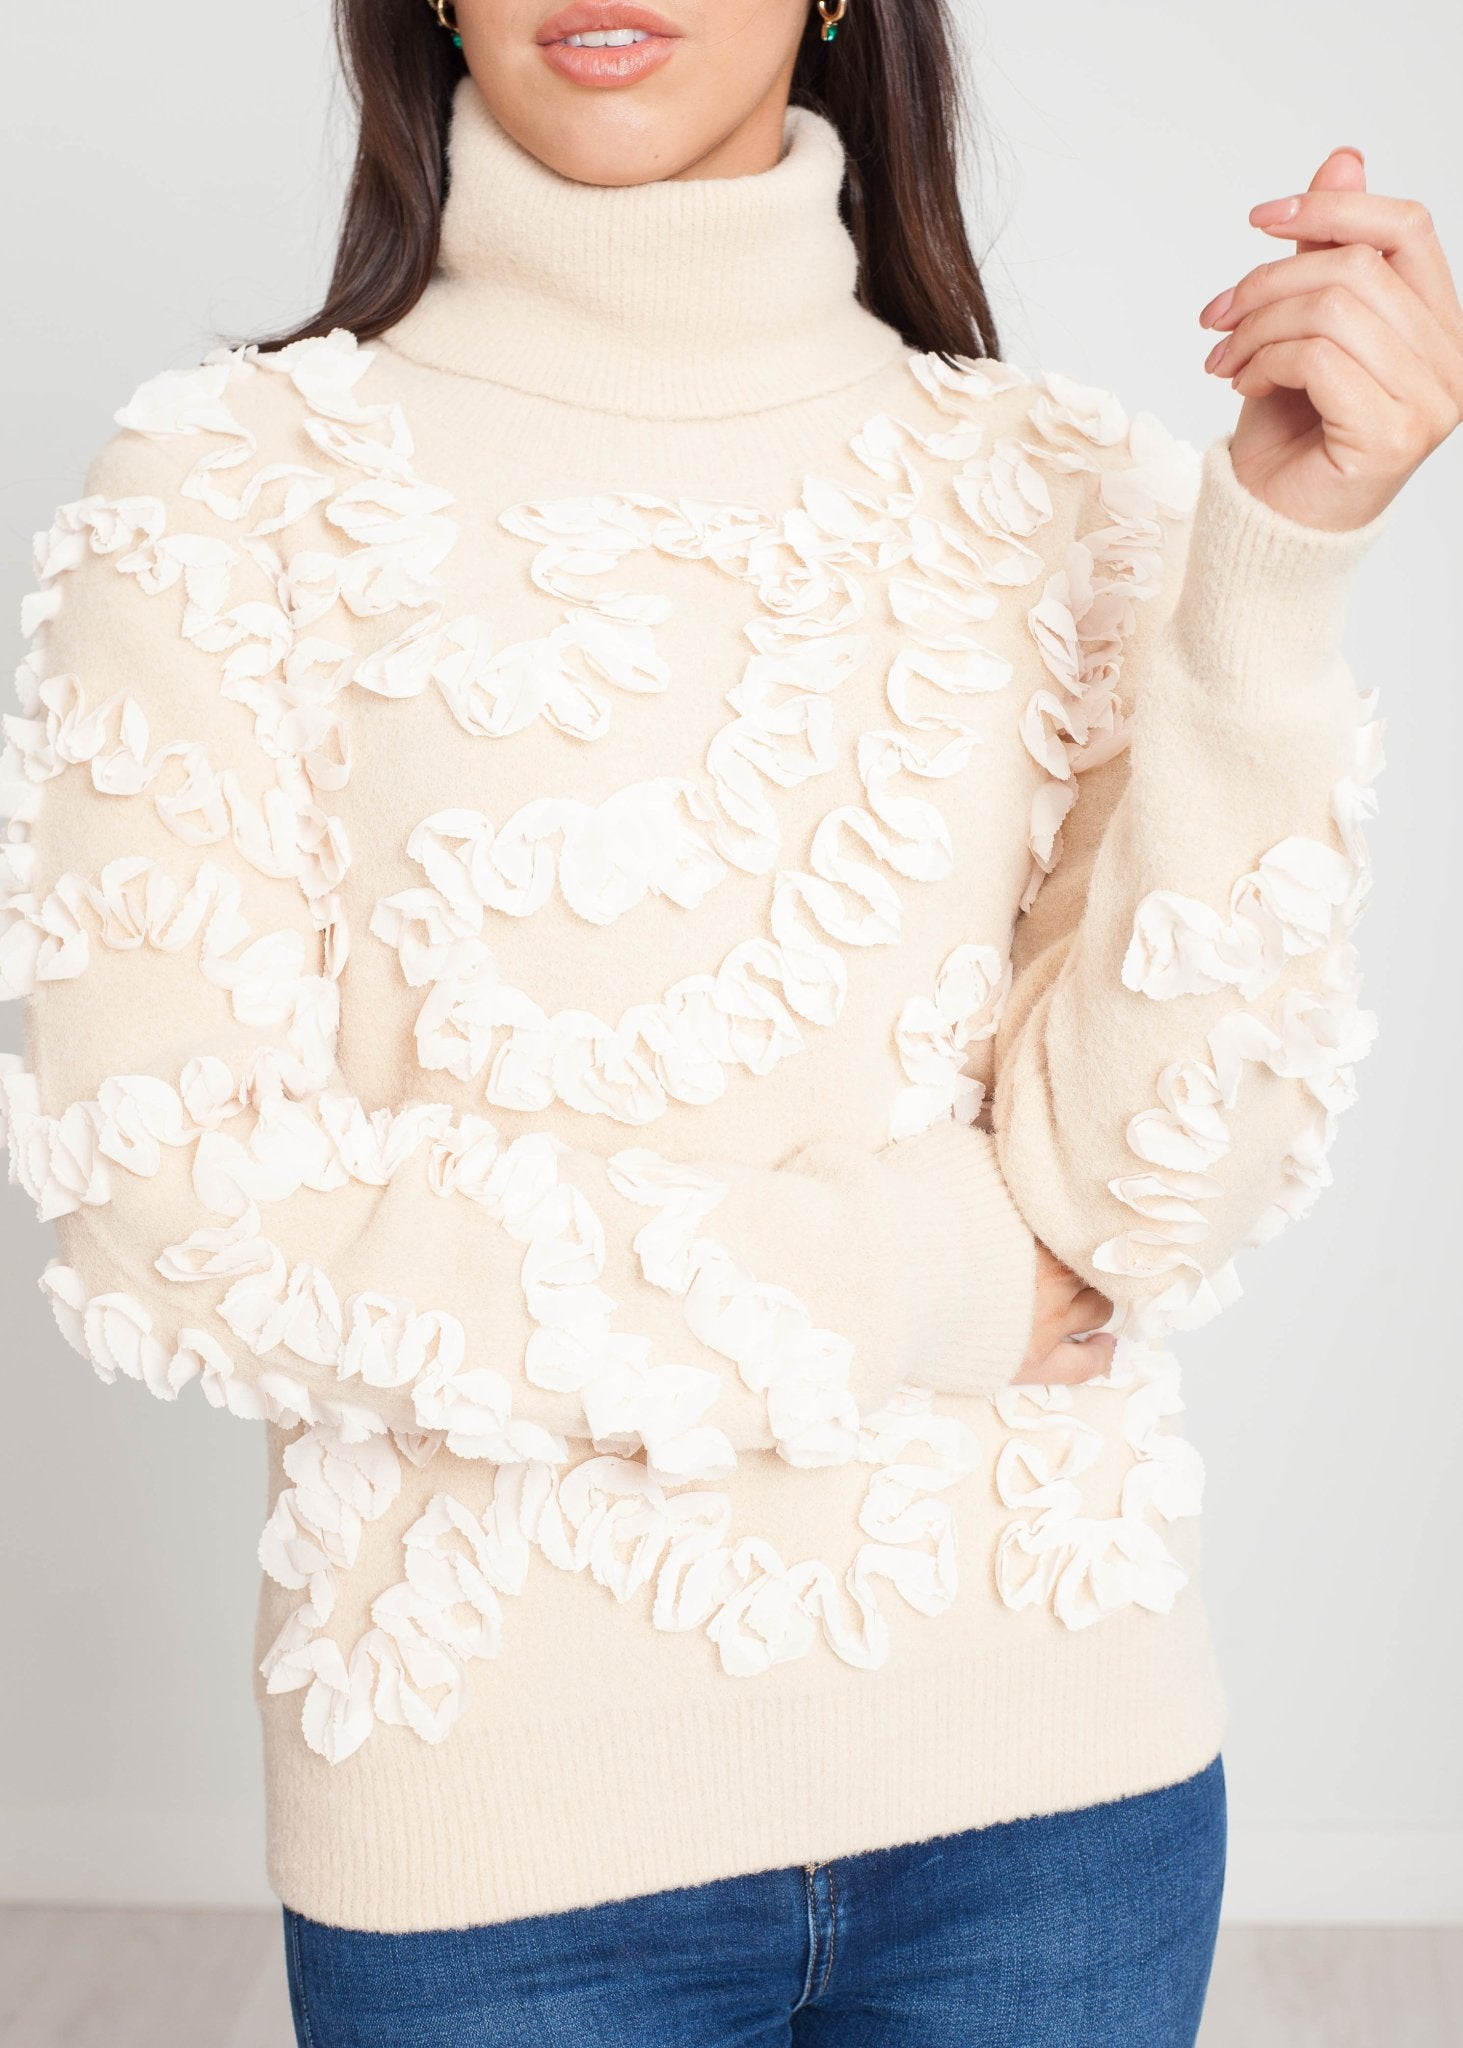 Sophia Polo Neck Frill Knit In Cream - The Walk in Wardrobe